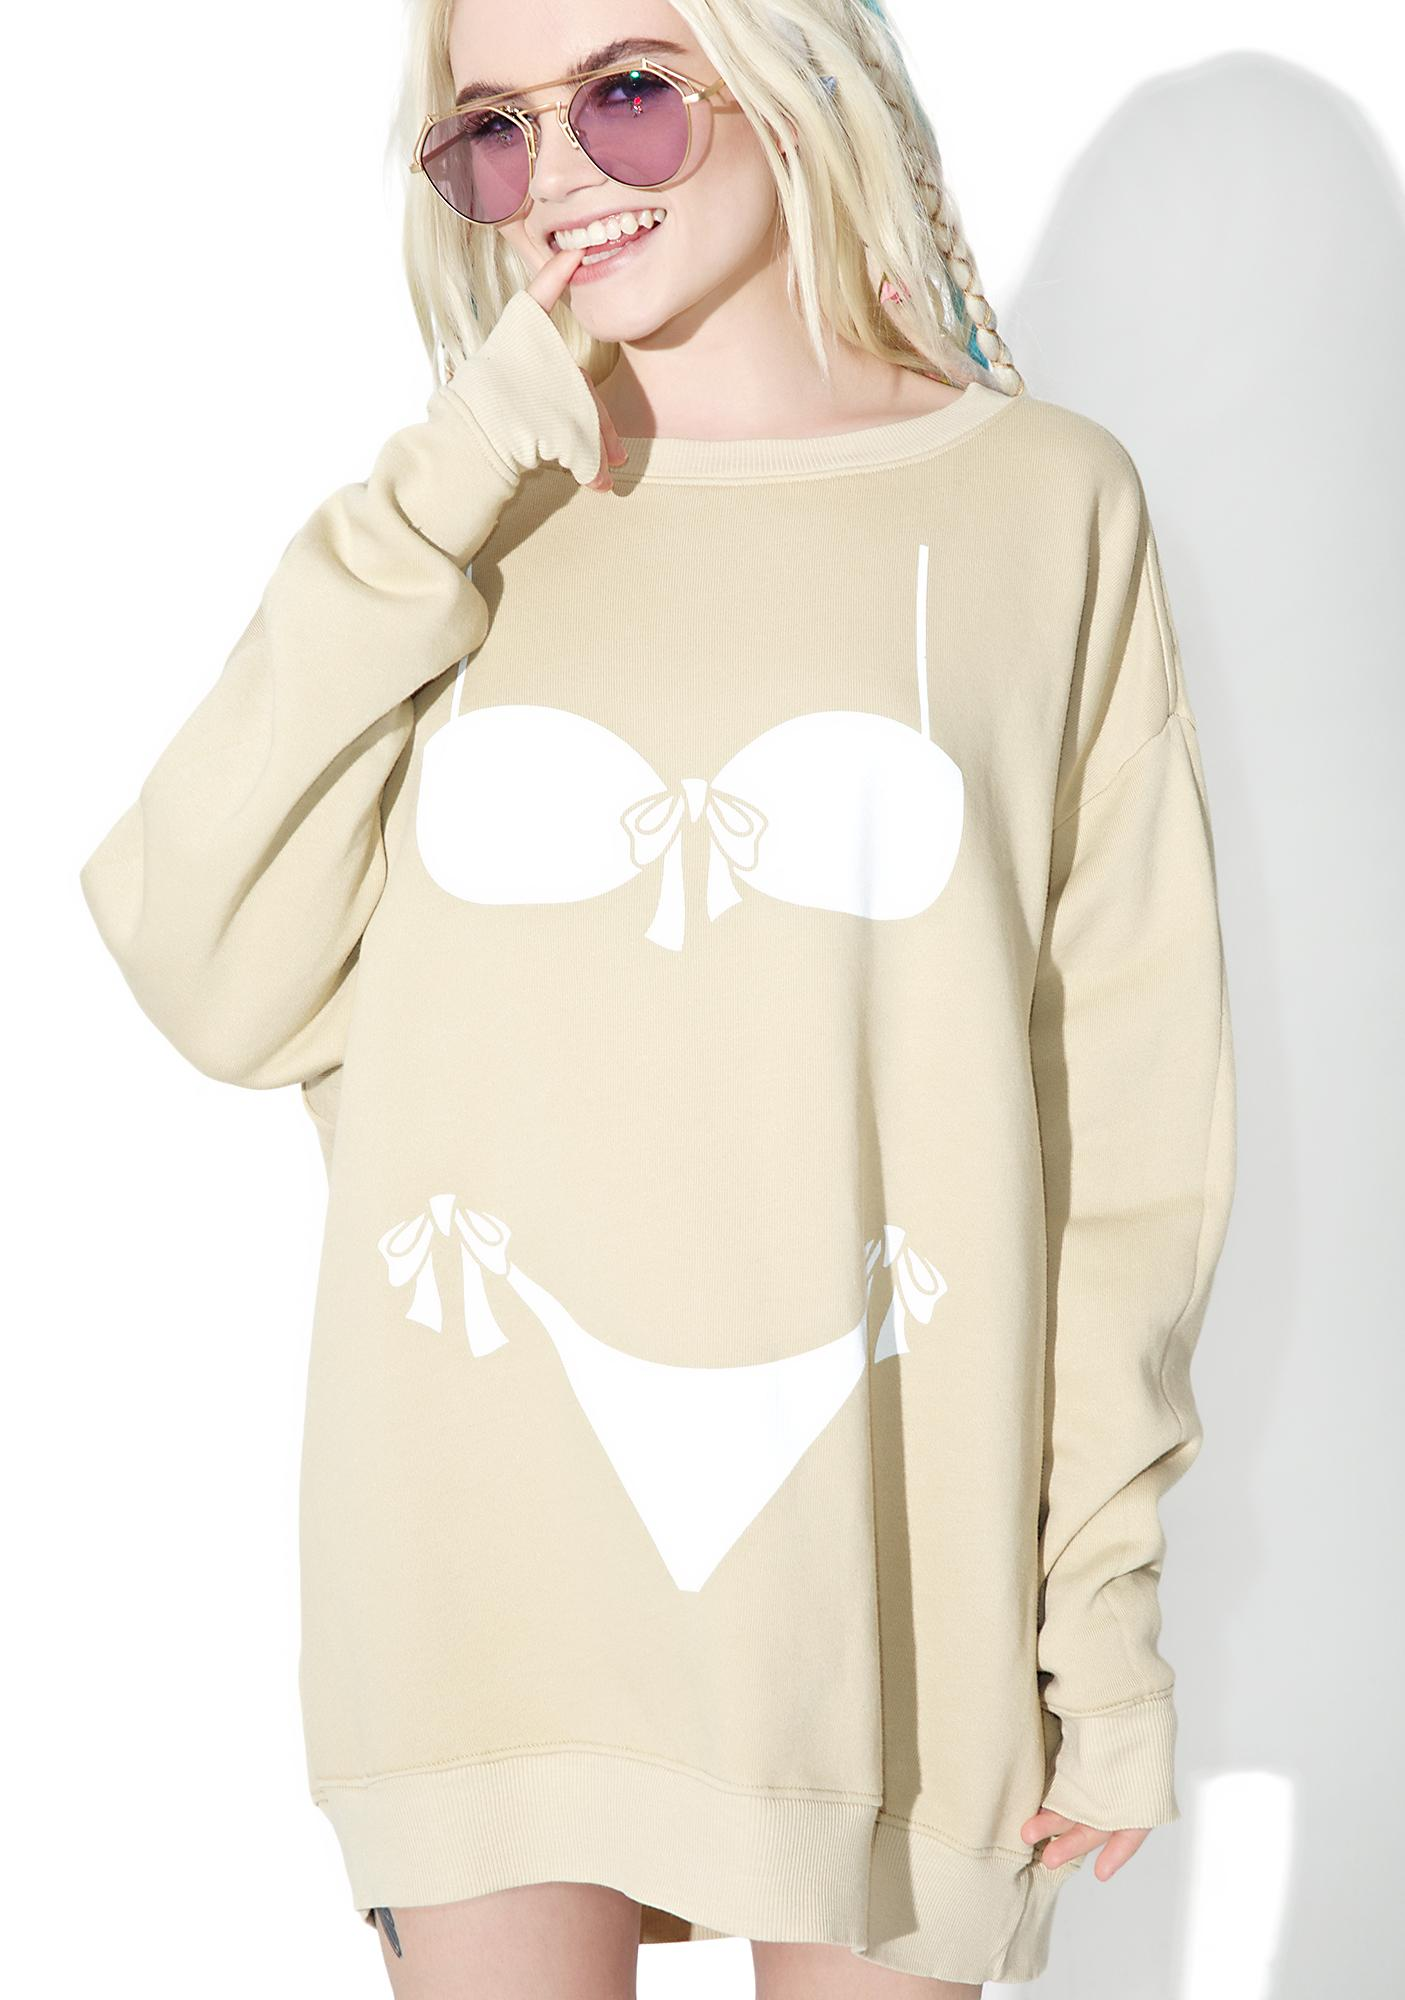 Wildfox Couture Bikini Bod Roadtrip Sweater